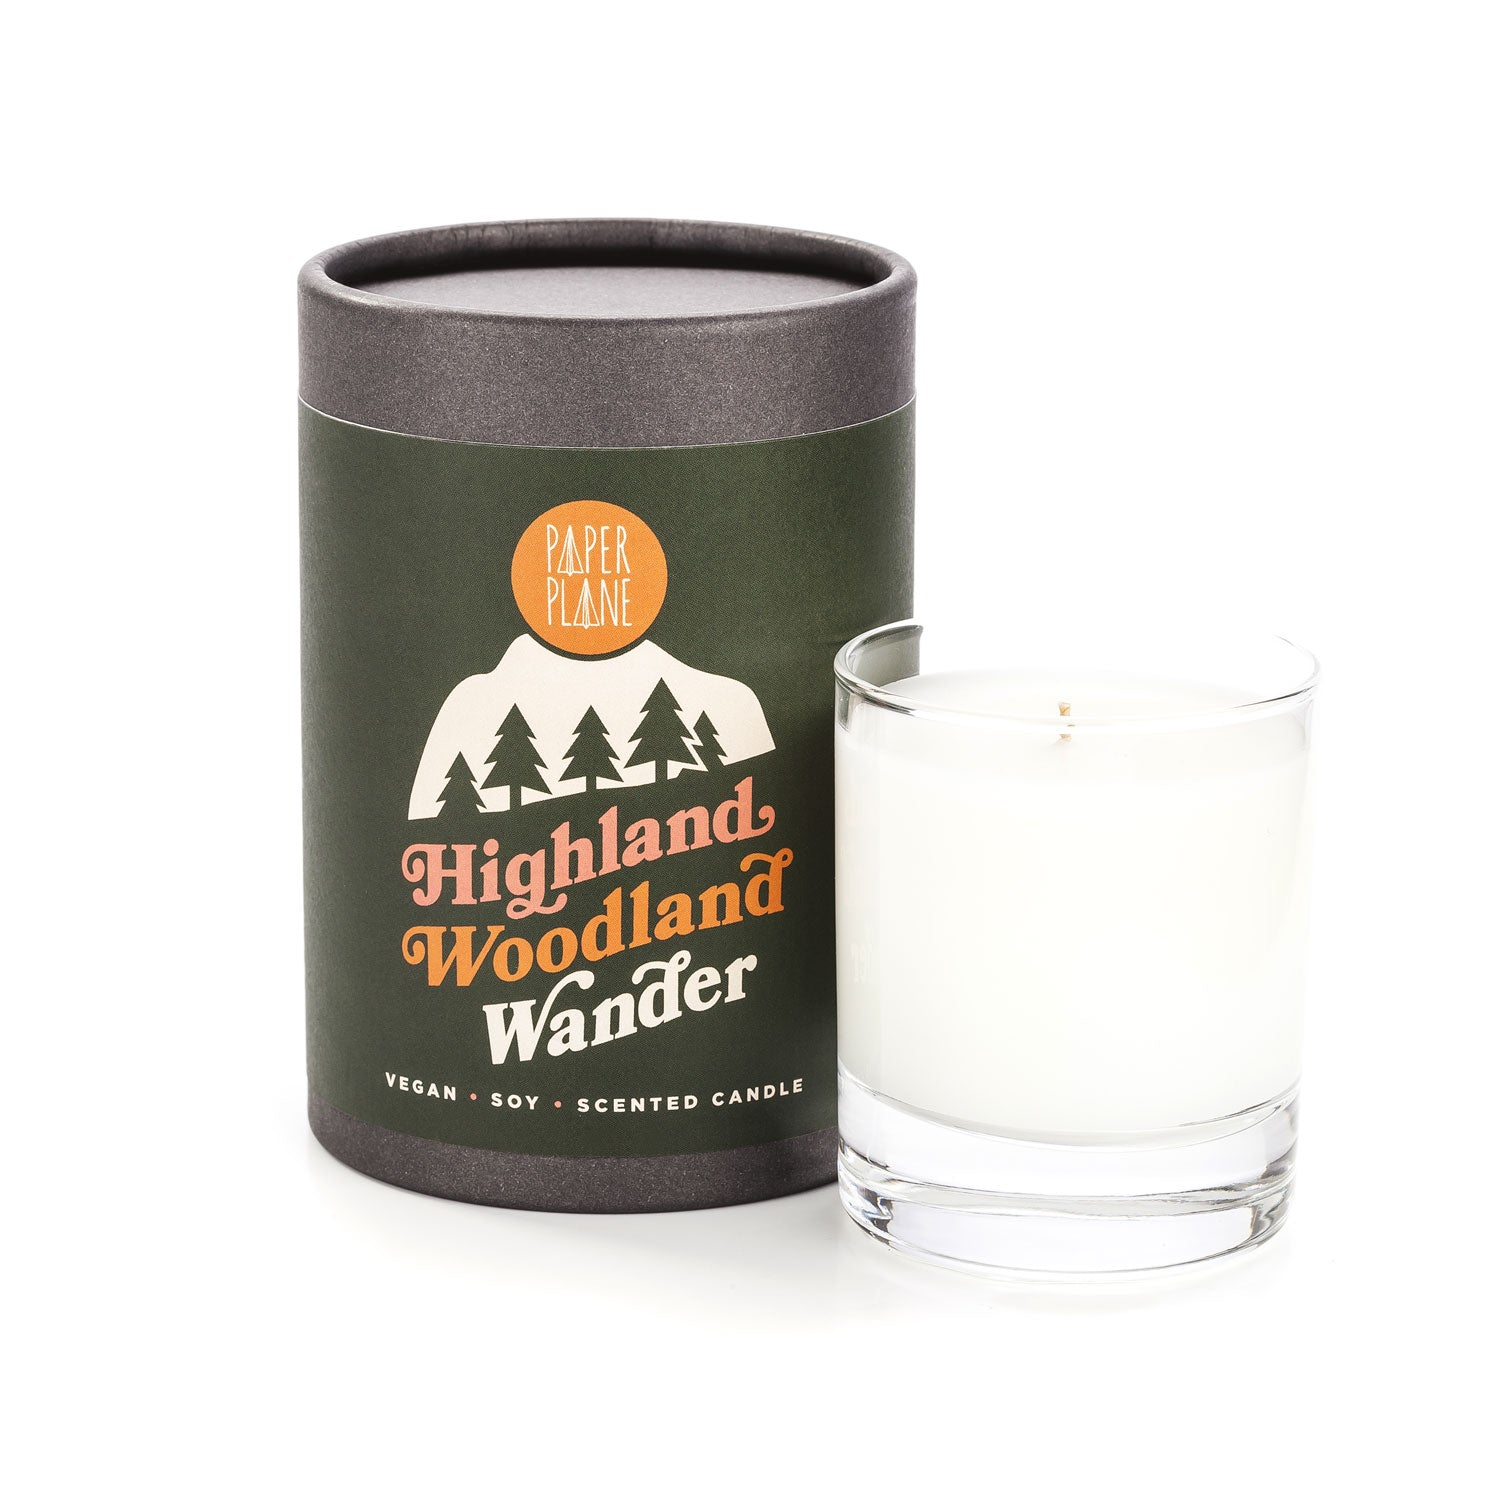 Highland Woodland Wander Candle